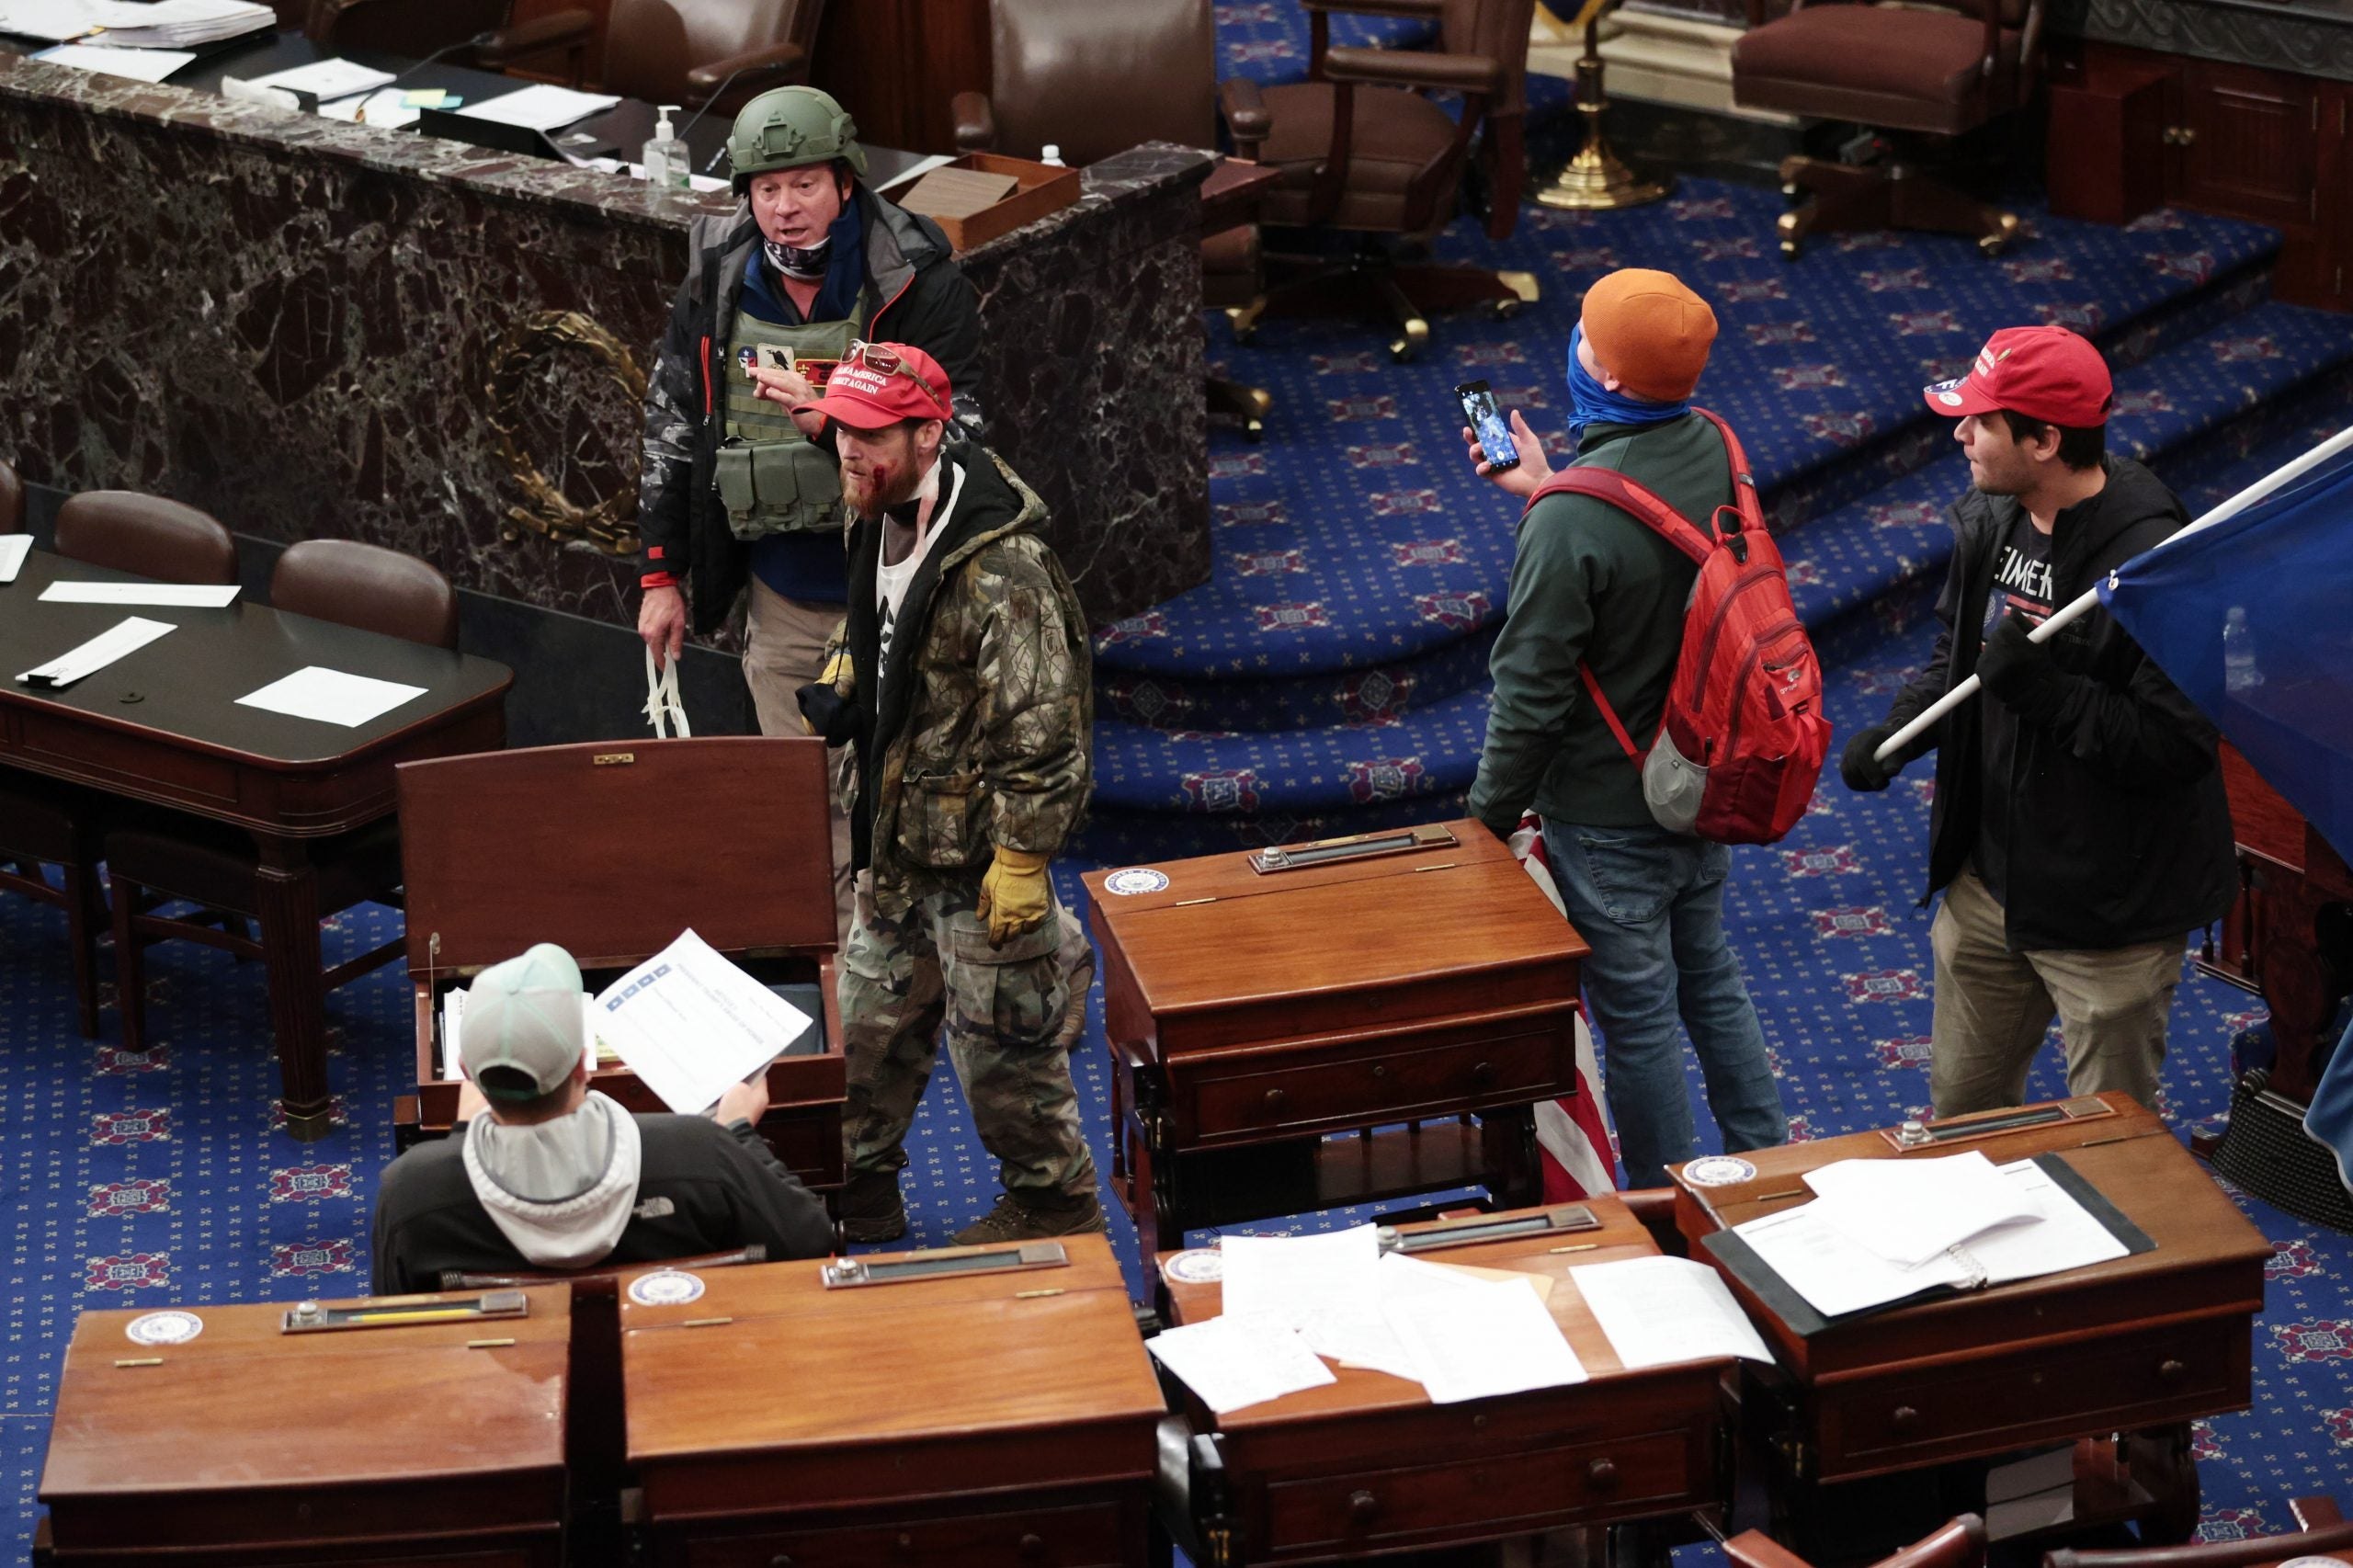 Armed Trump Supporters Storm U.S. Capitol To Stop Electoral Vote Count